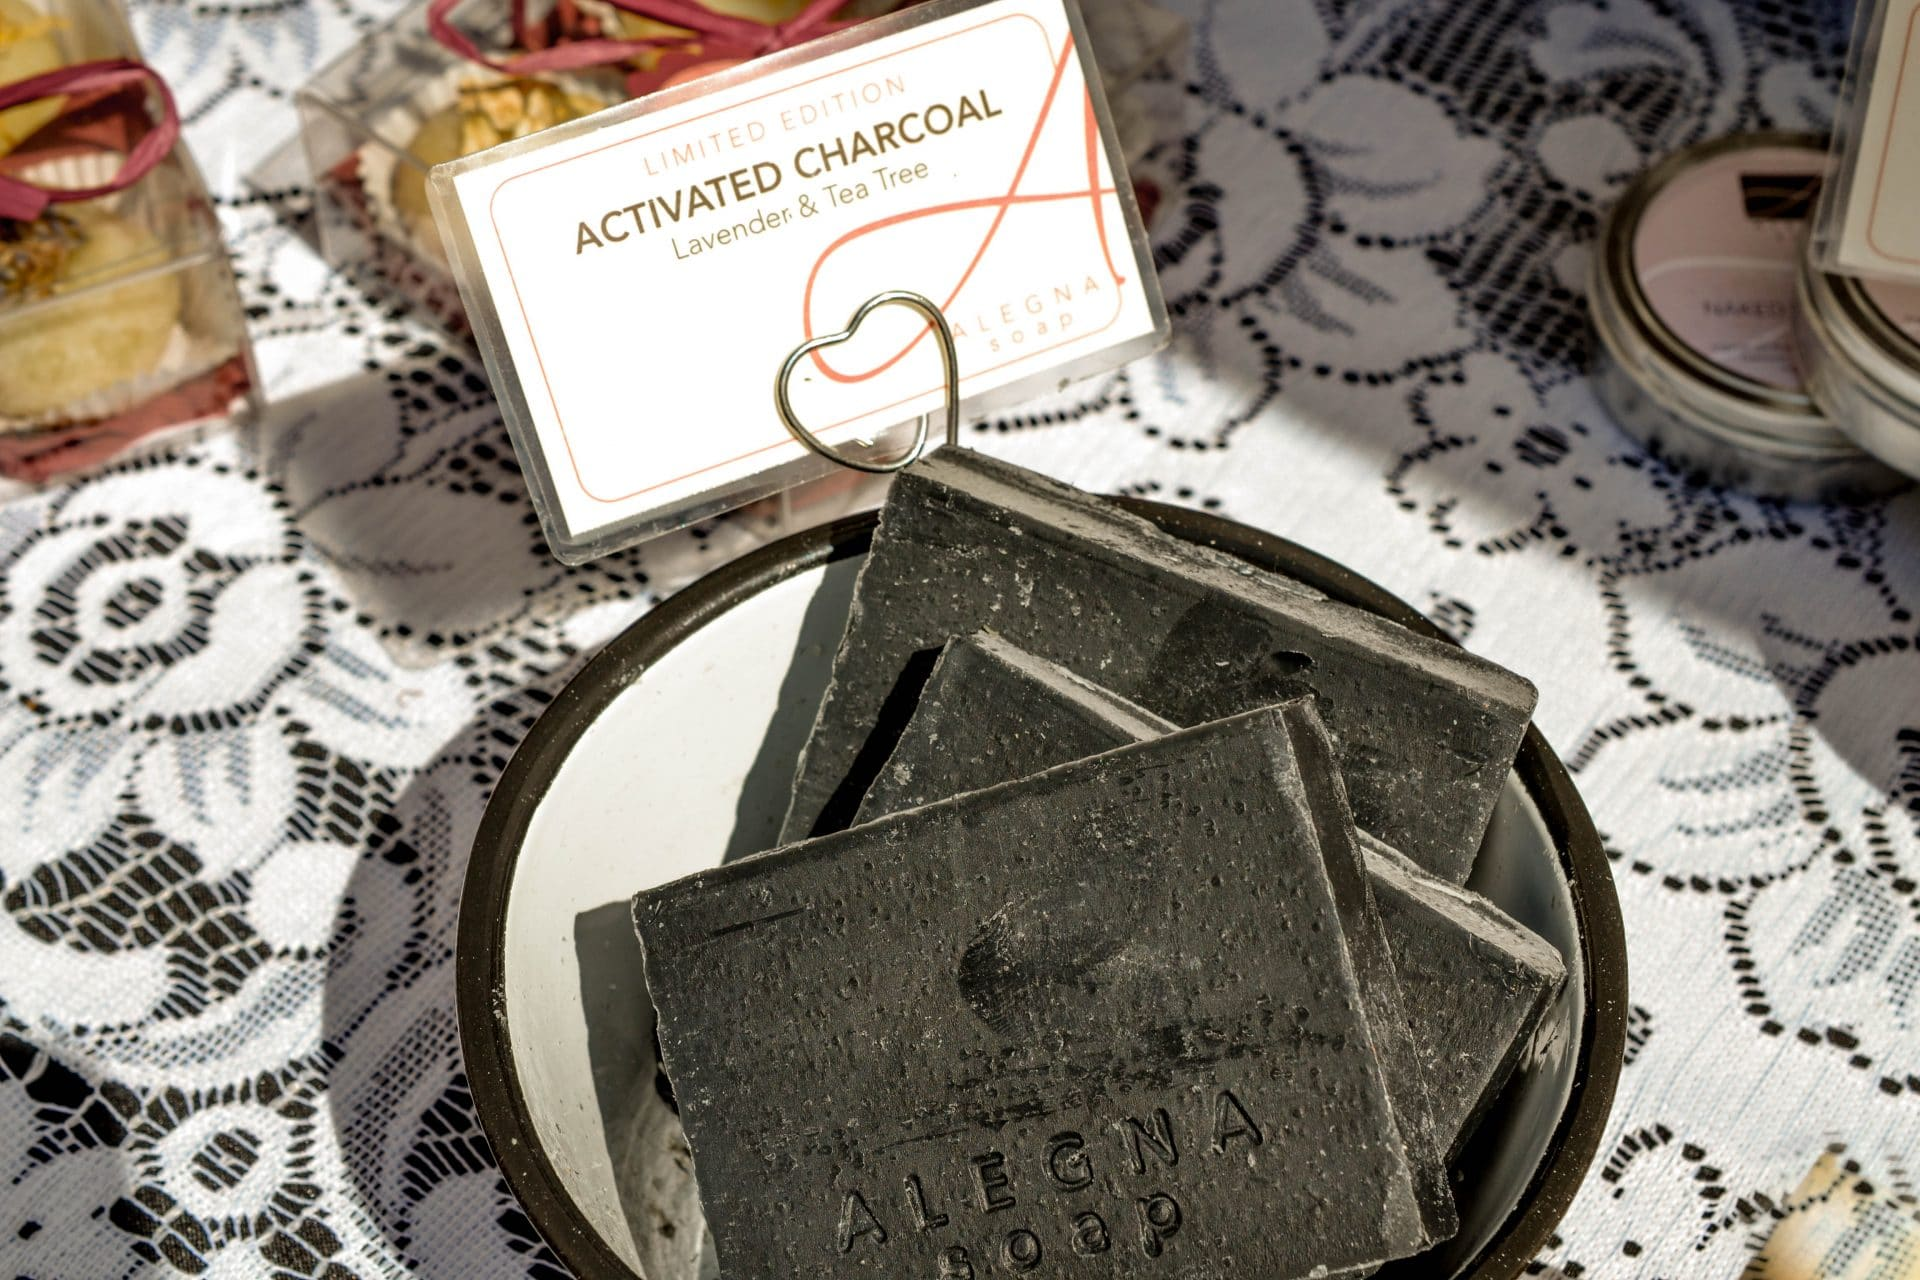 Alegna Soap® Activated Charcoal harcoal soap